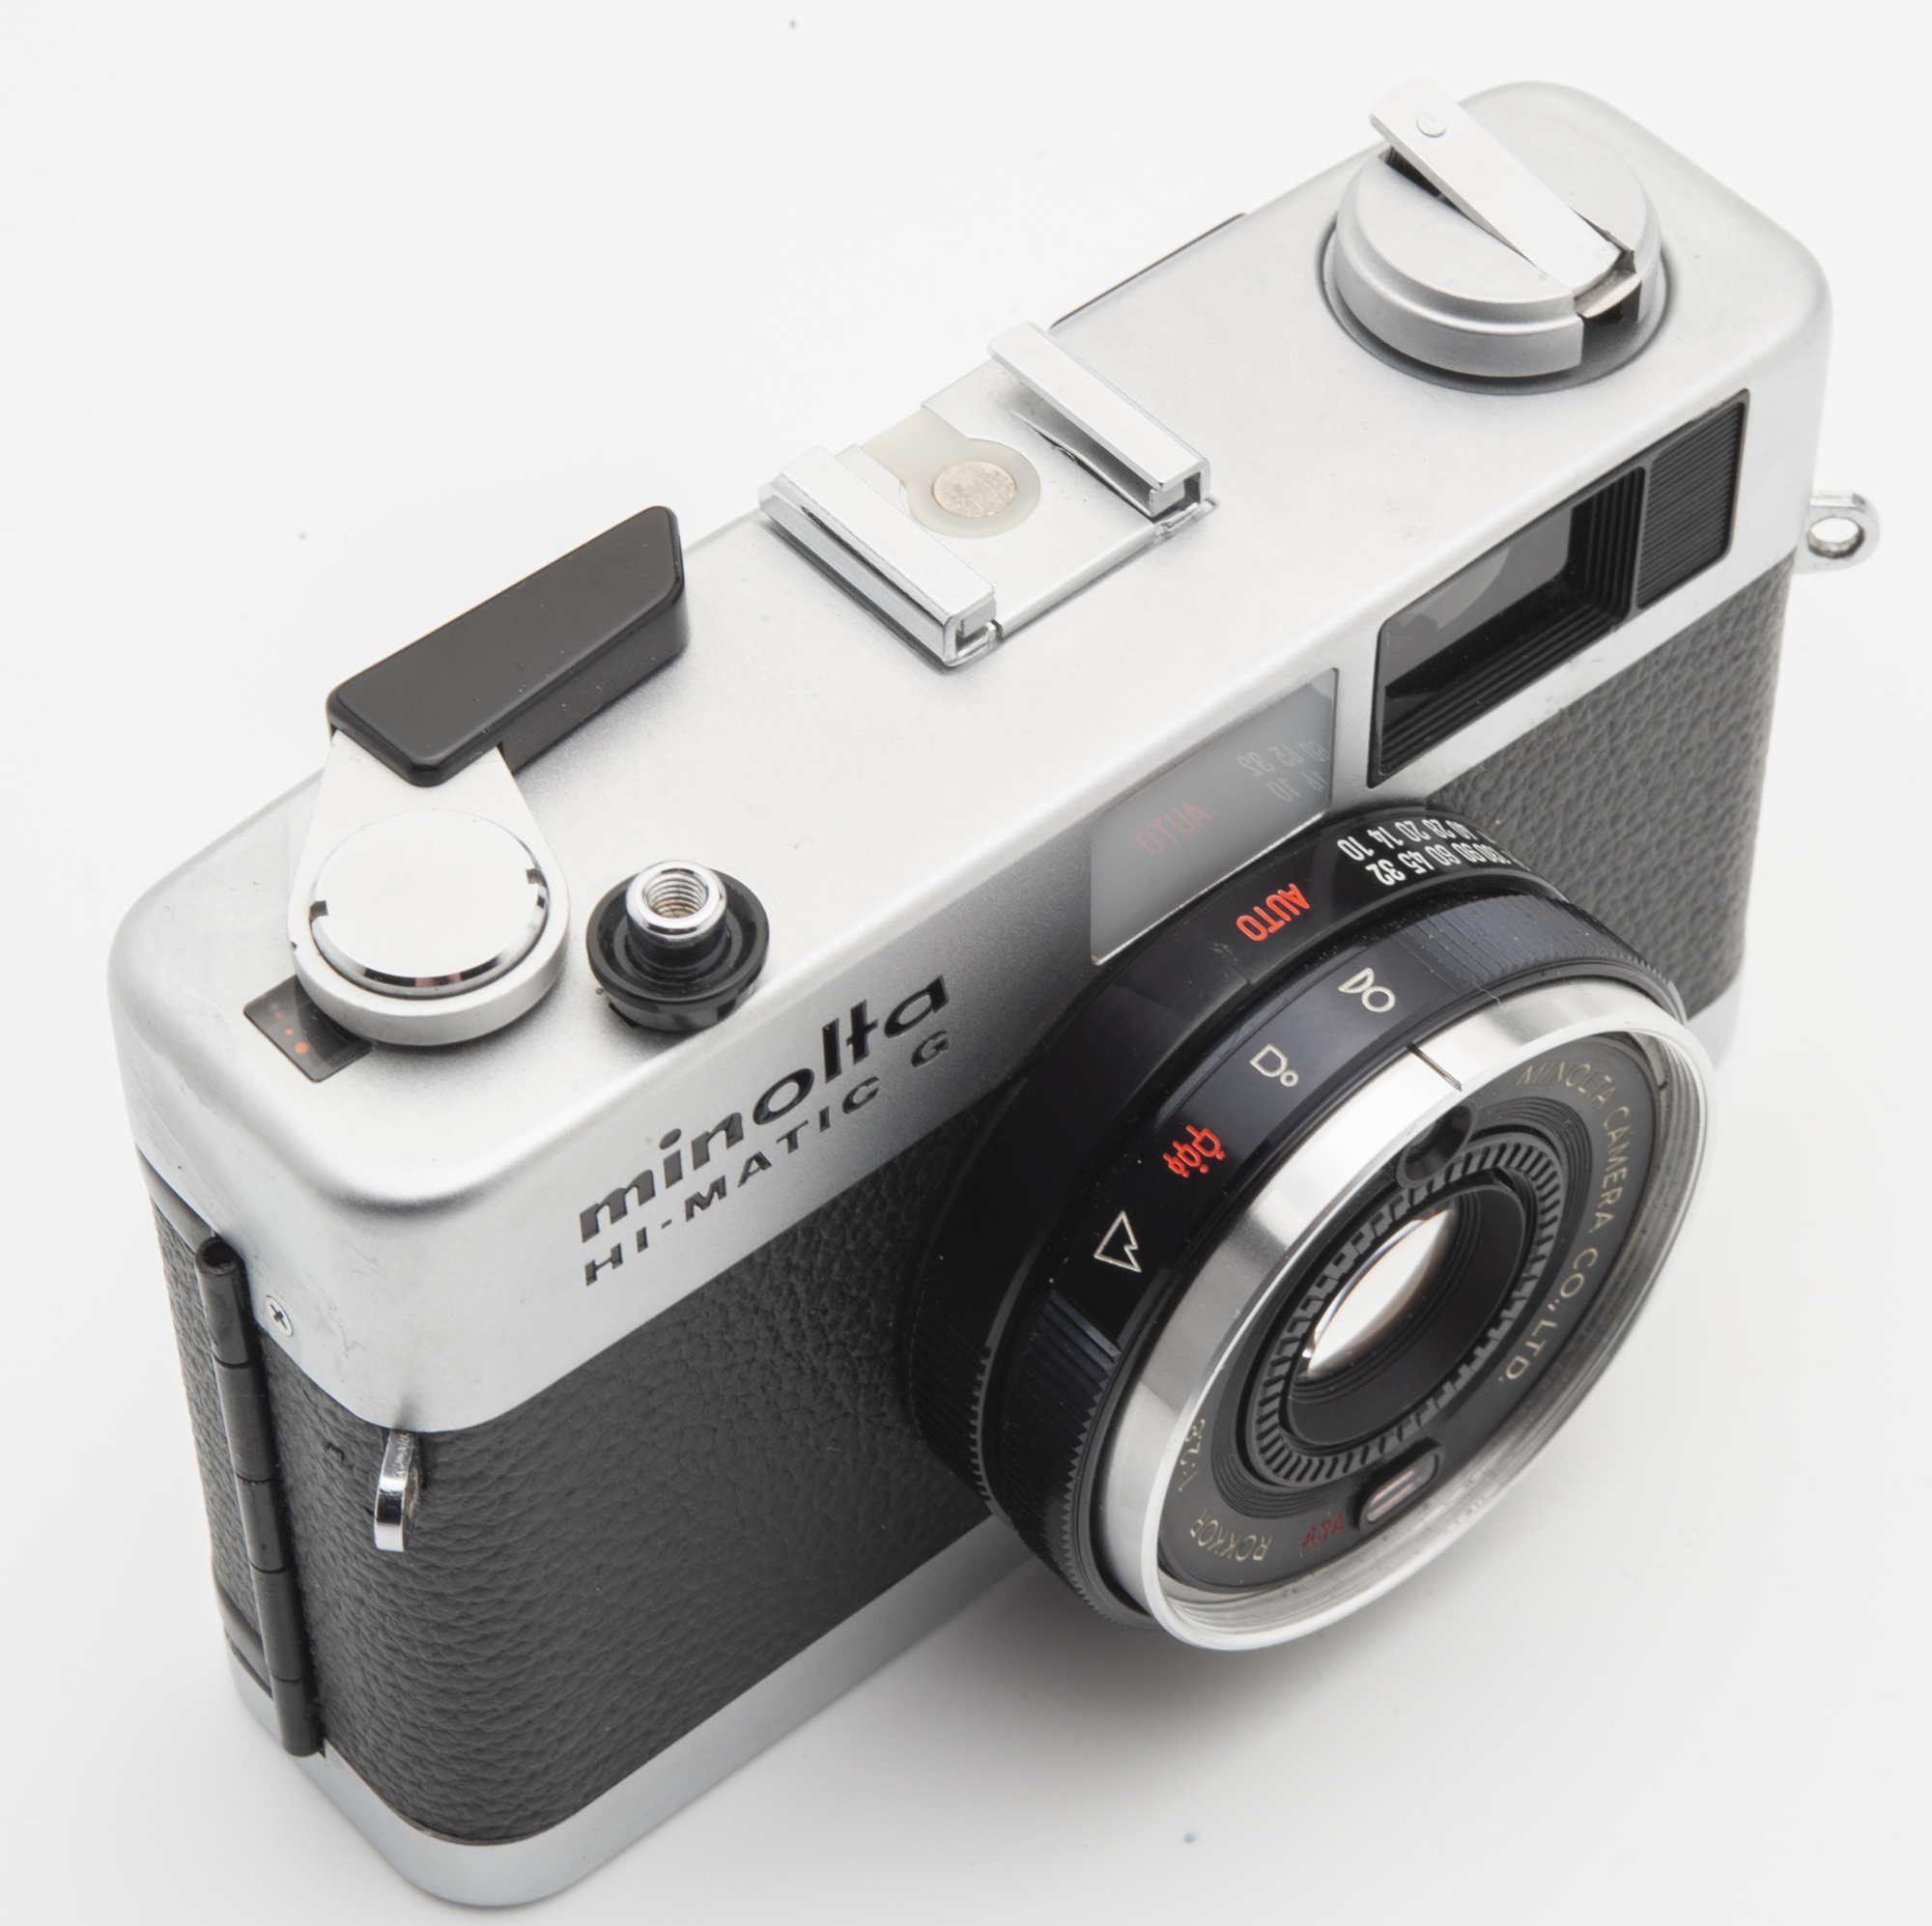 Minolta Hi-Matic G Kamera Sucherkamera - Rokkor 38mm 1:2.8 Optik